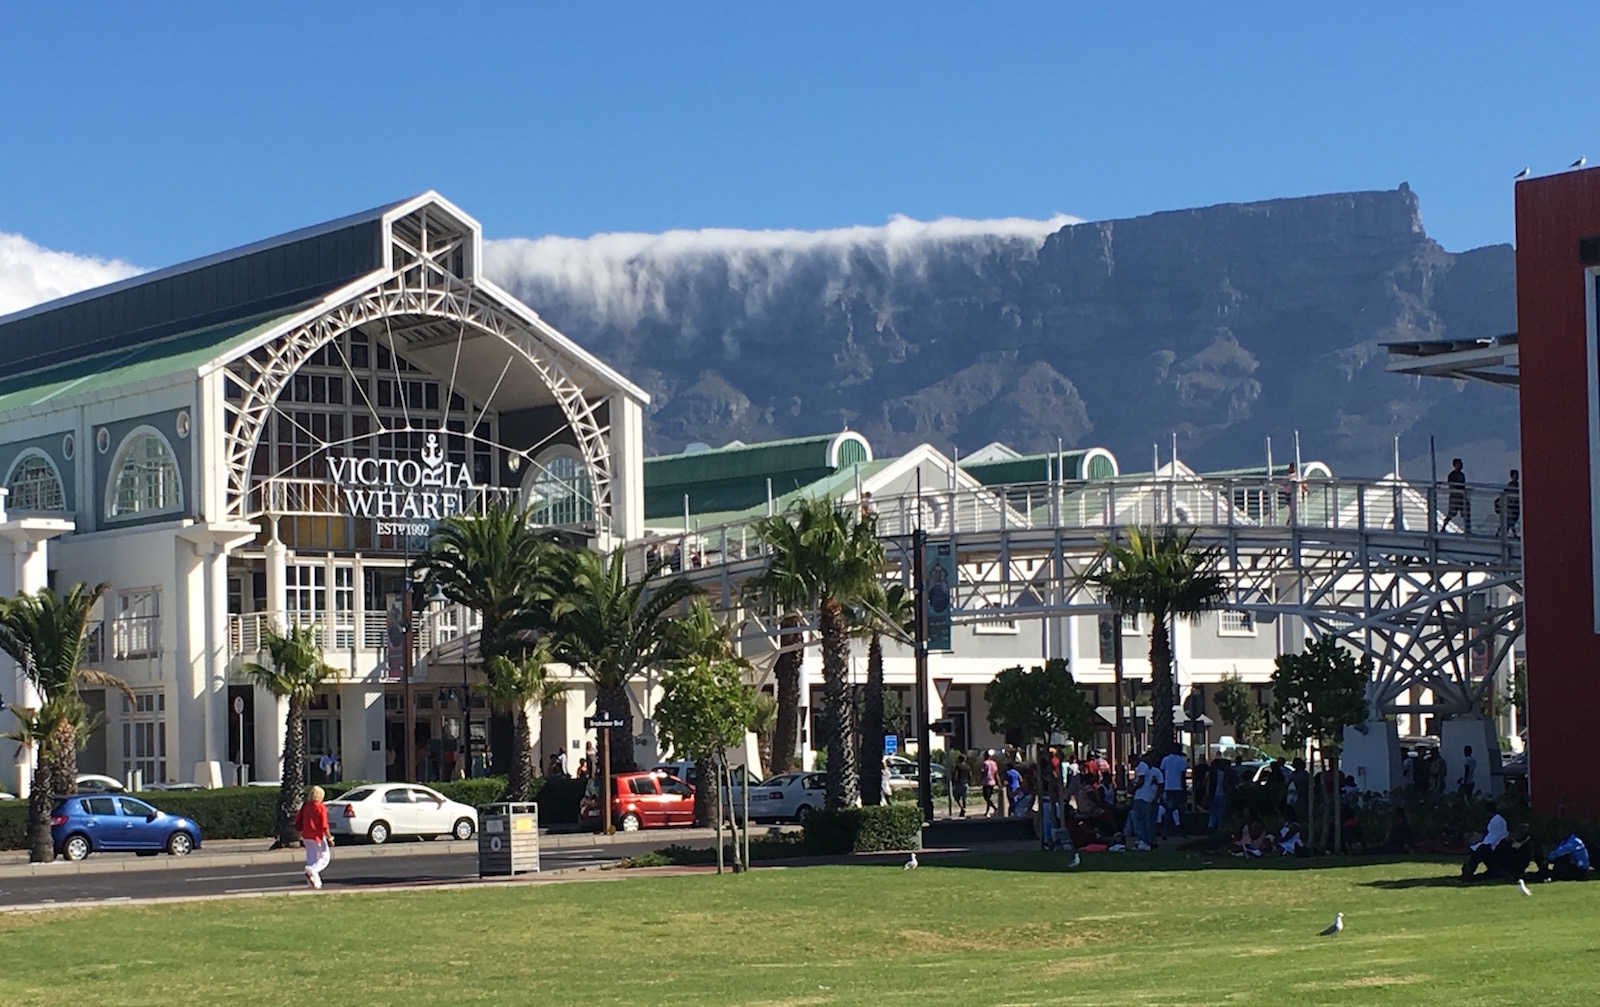 Cape Town - one of the most beautiful cities in the world and a good place to escape to when the cold winters take over the northern hemisphere.